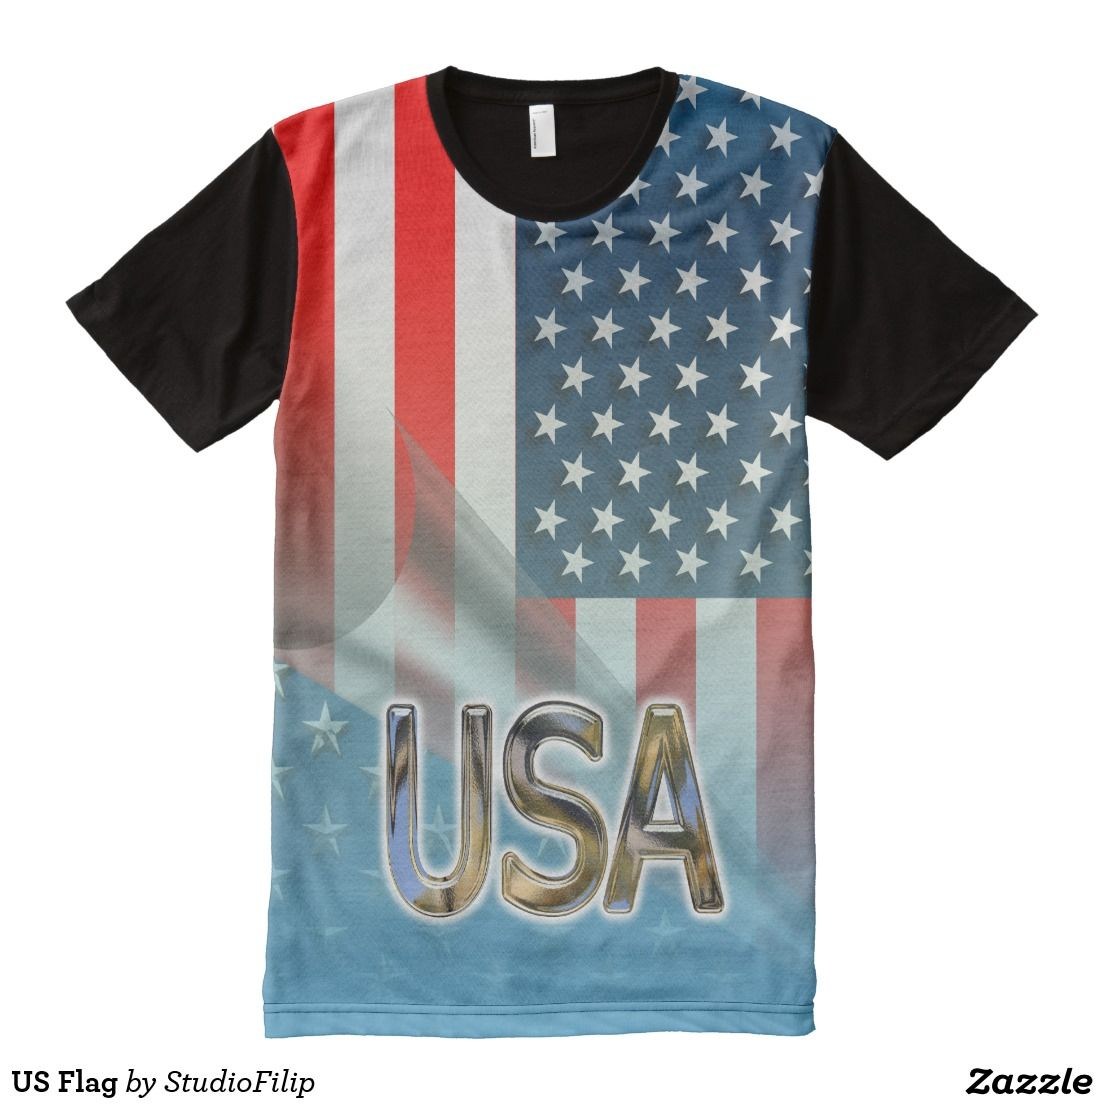 US Flag | To SAVE a lot just enter the Discount Code at checkout! >>> It's right under the menu on each product page!